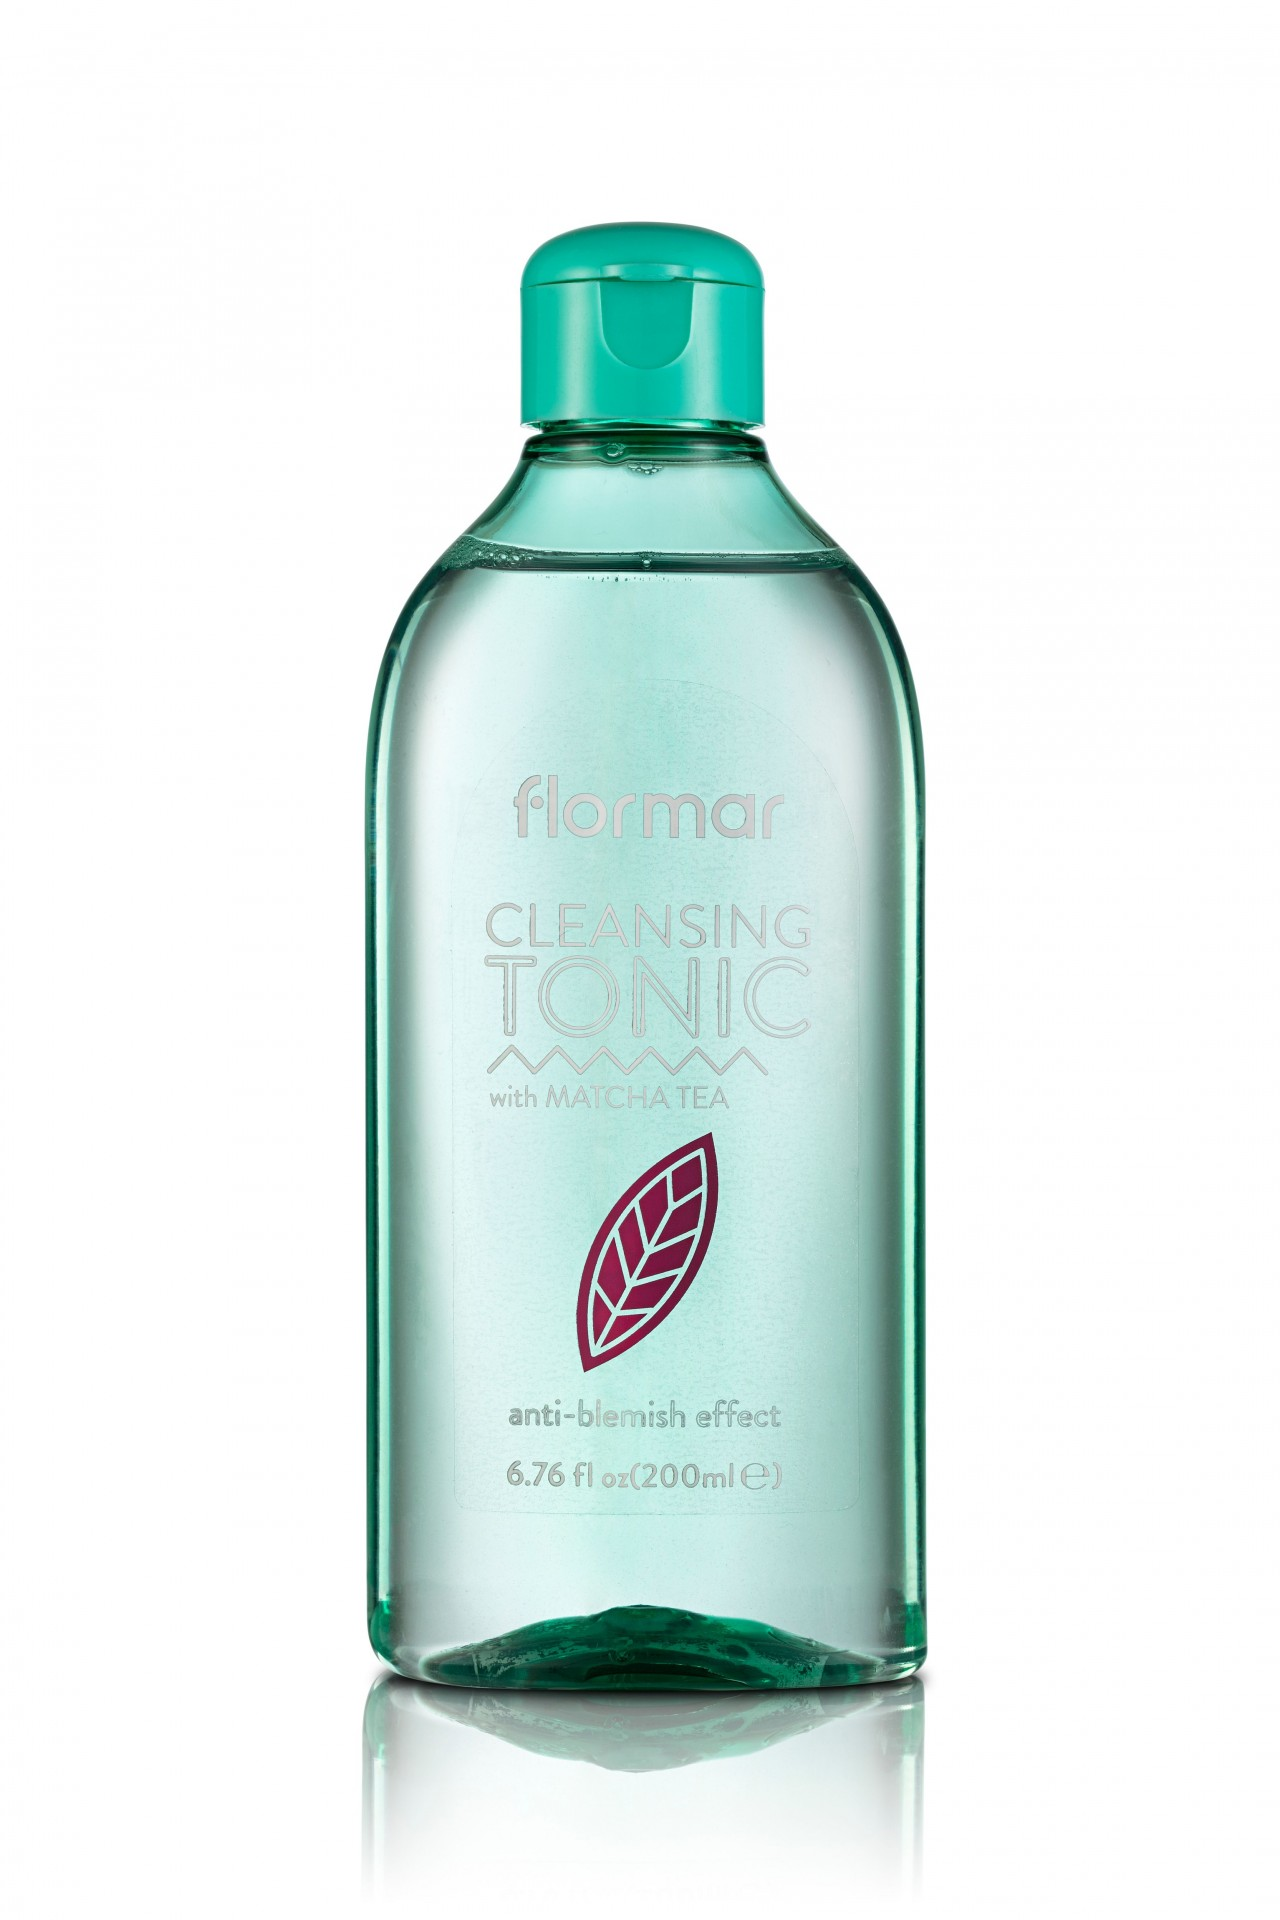 FLORMAR - CLEANSING TONIC - MATCHA TEA